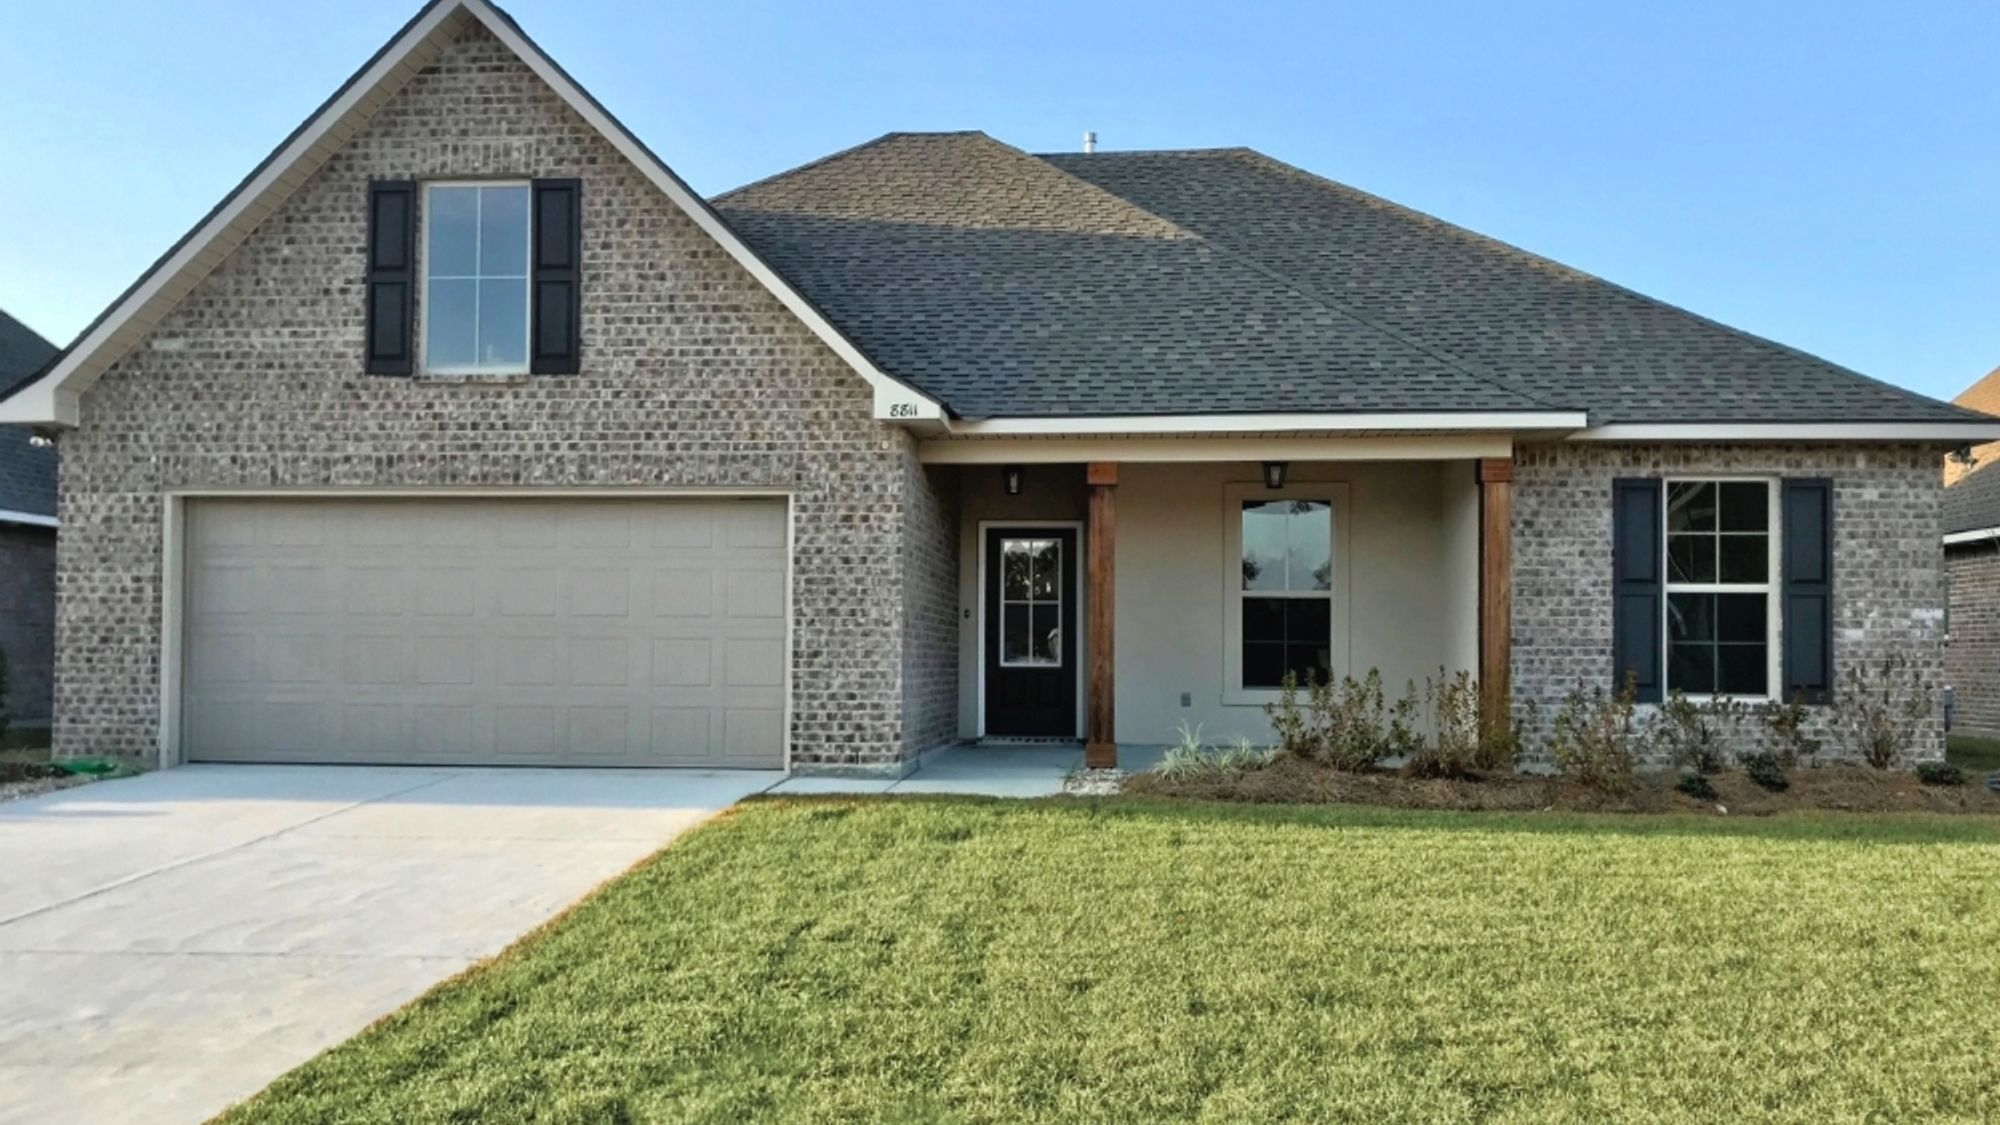 Front View - Rennes IV A - Nickens Lake Community - DSLD Homes Denham Springs